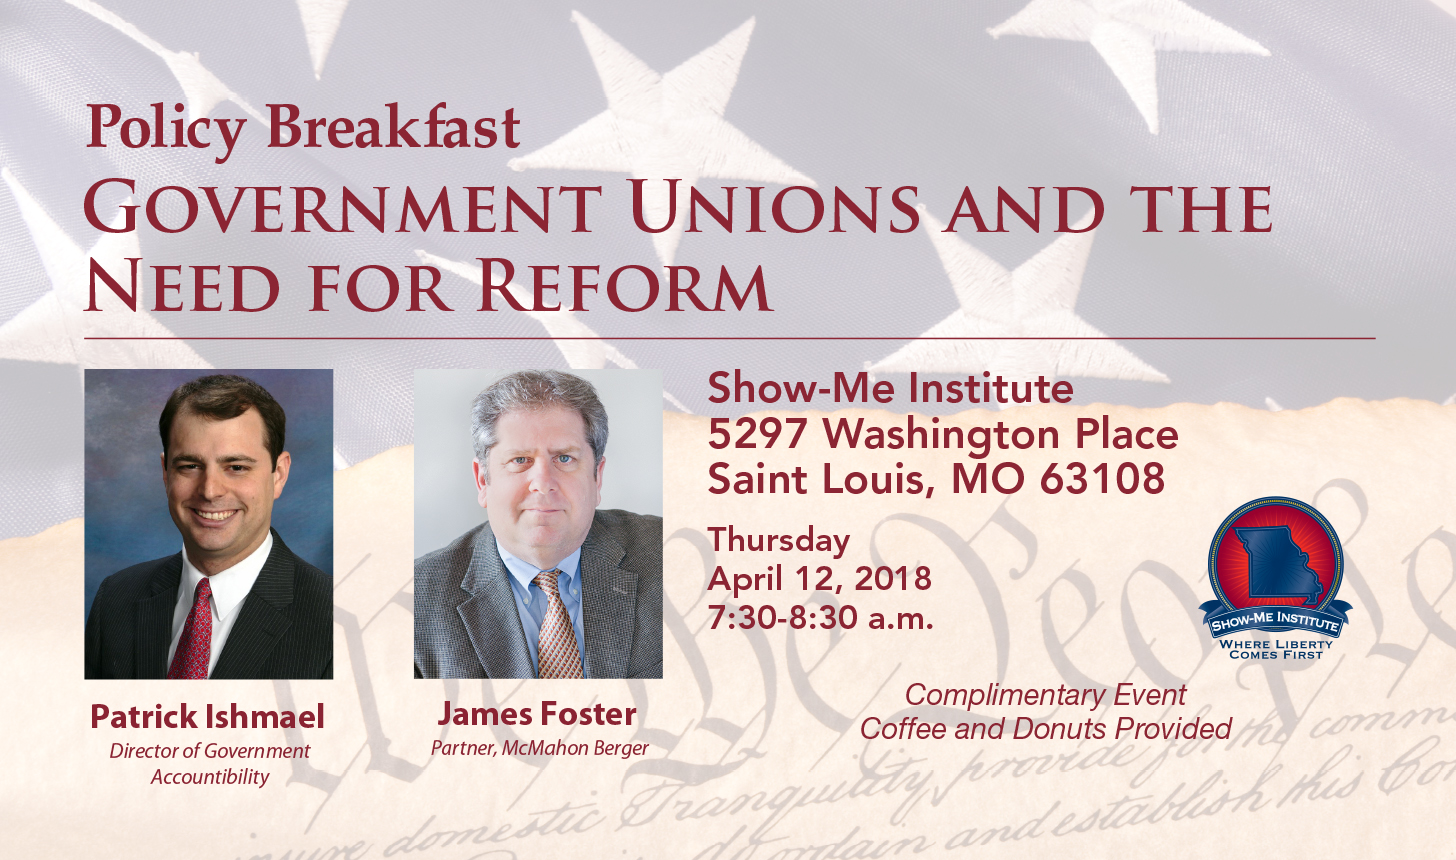 Show-Me Institute Policy Breakfast